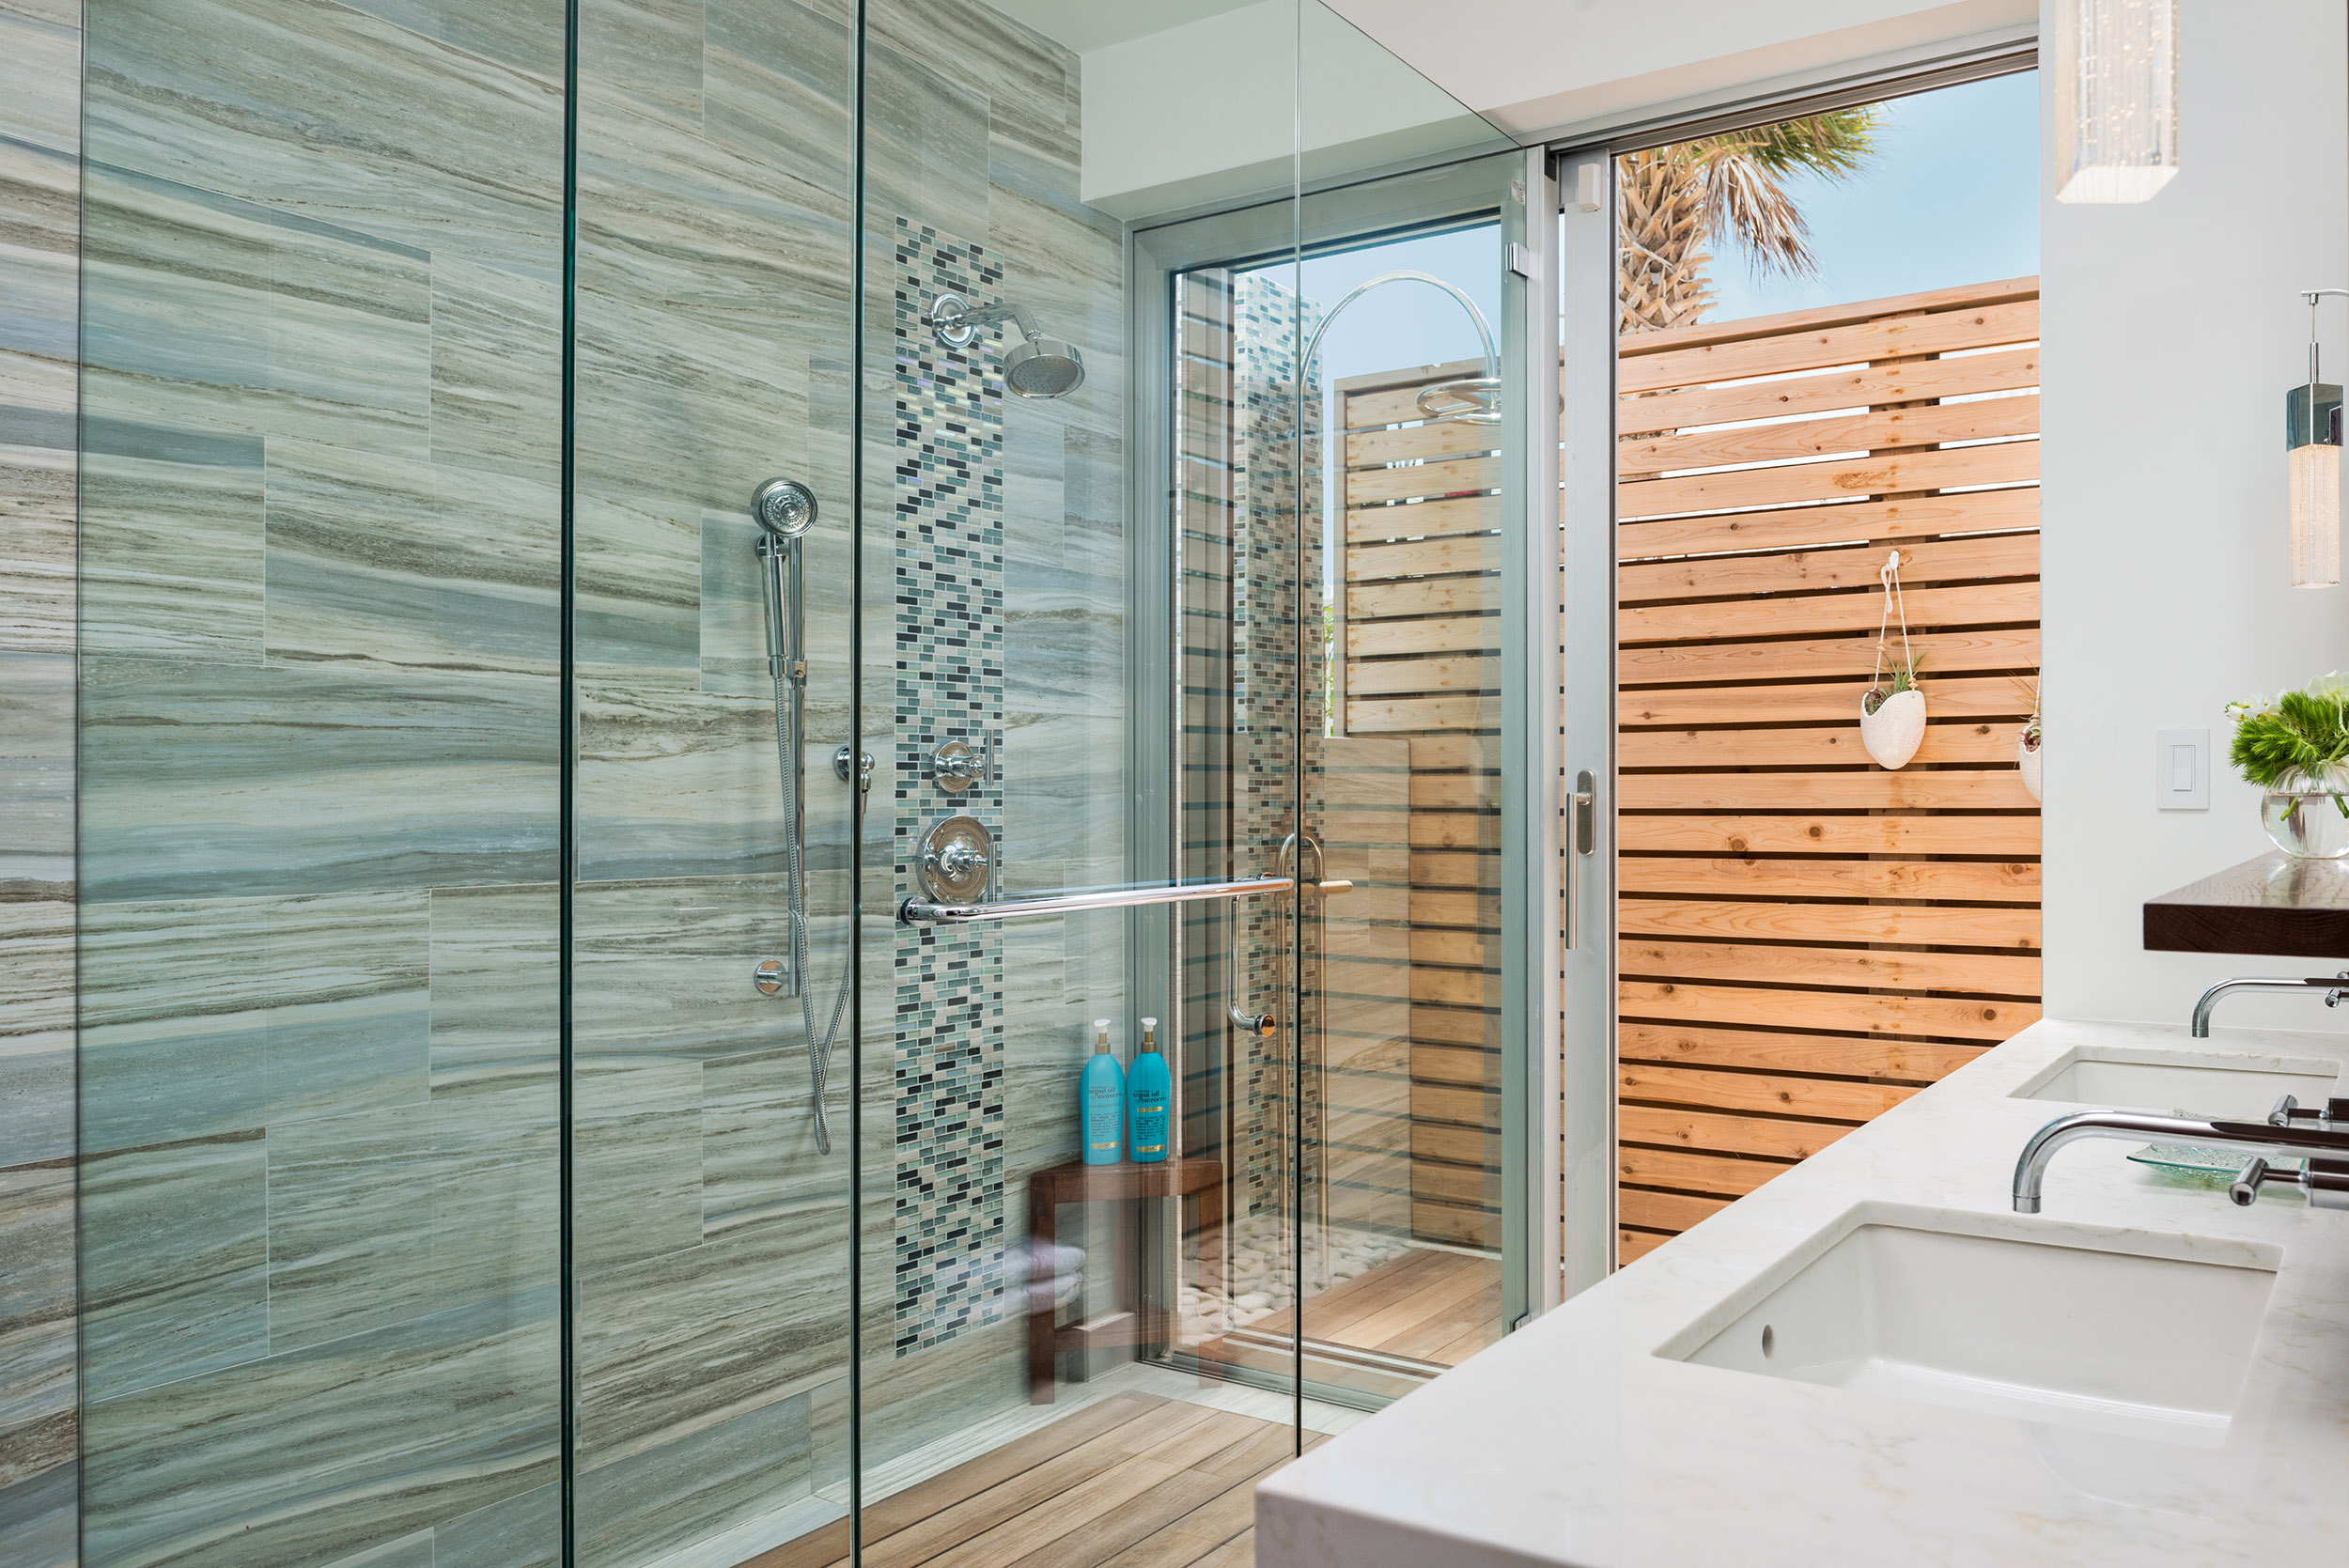 Villa Alinna - view of bathroom, with external shower area